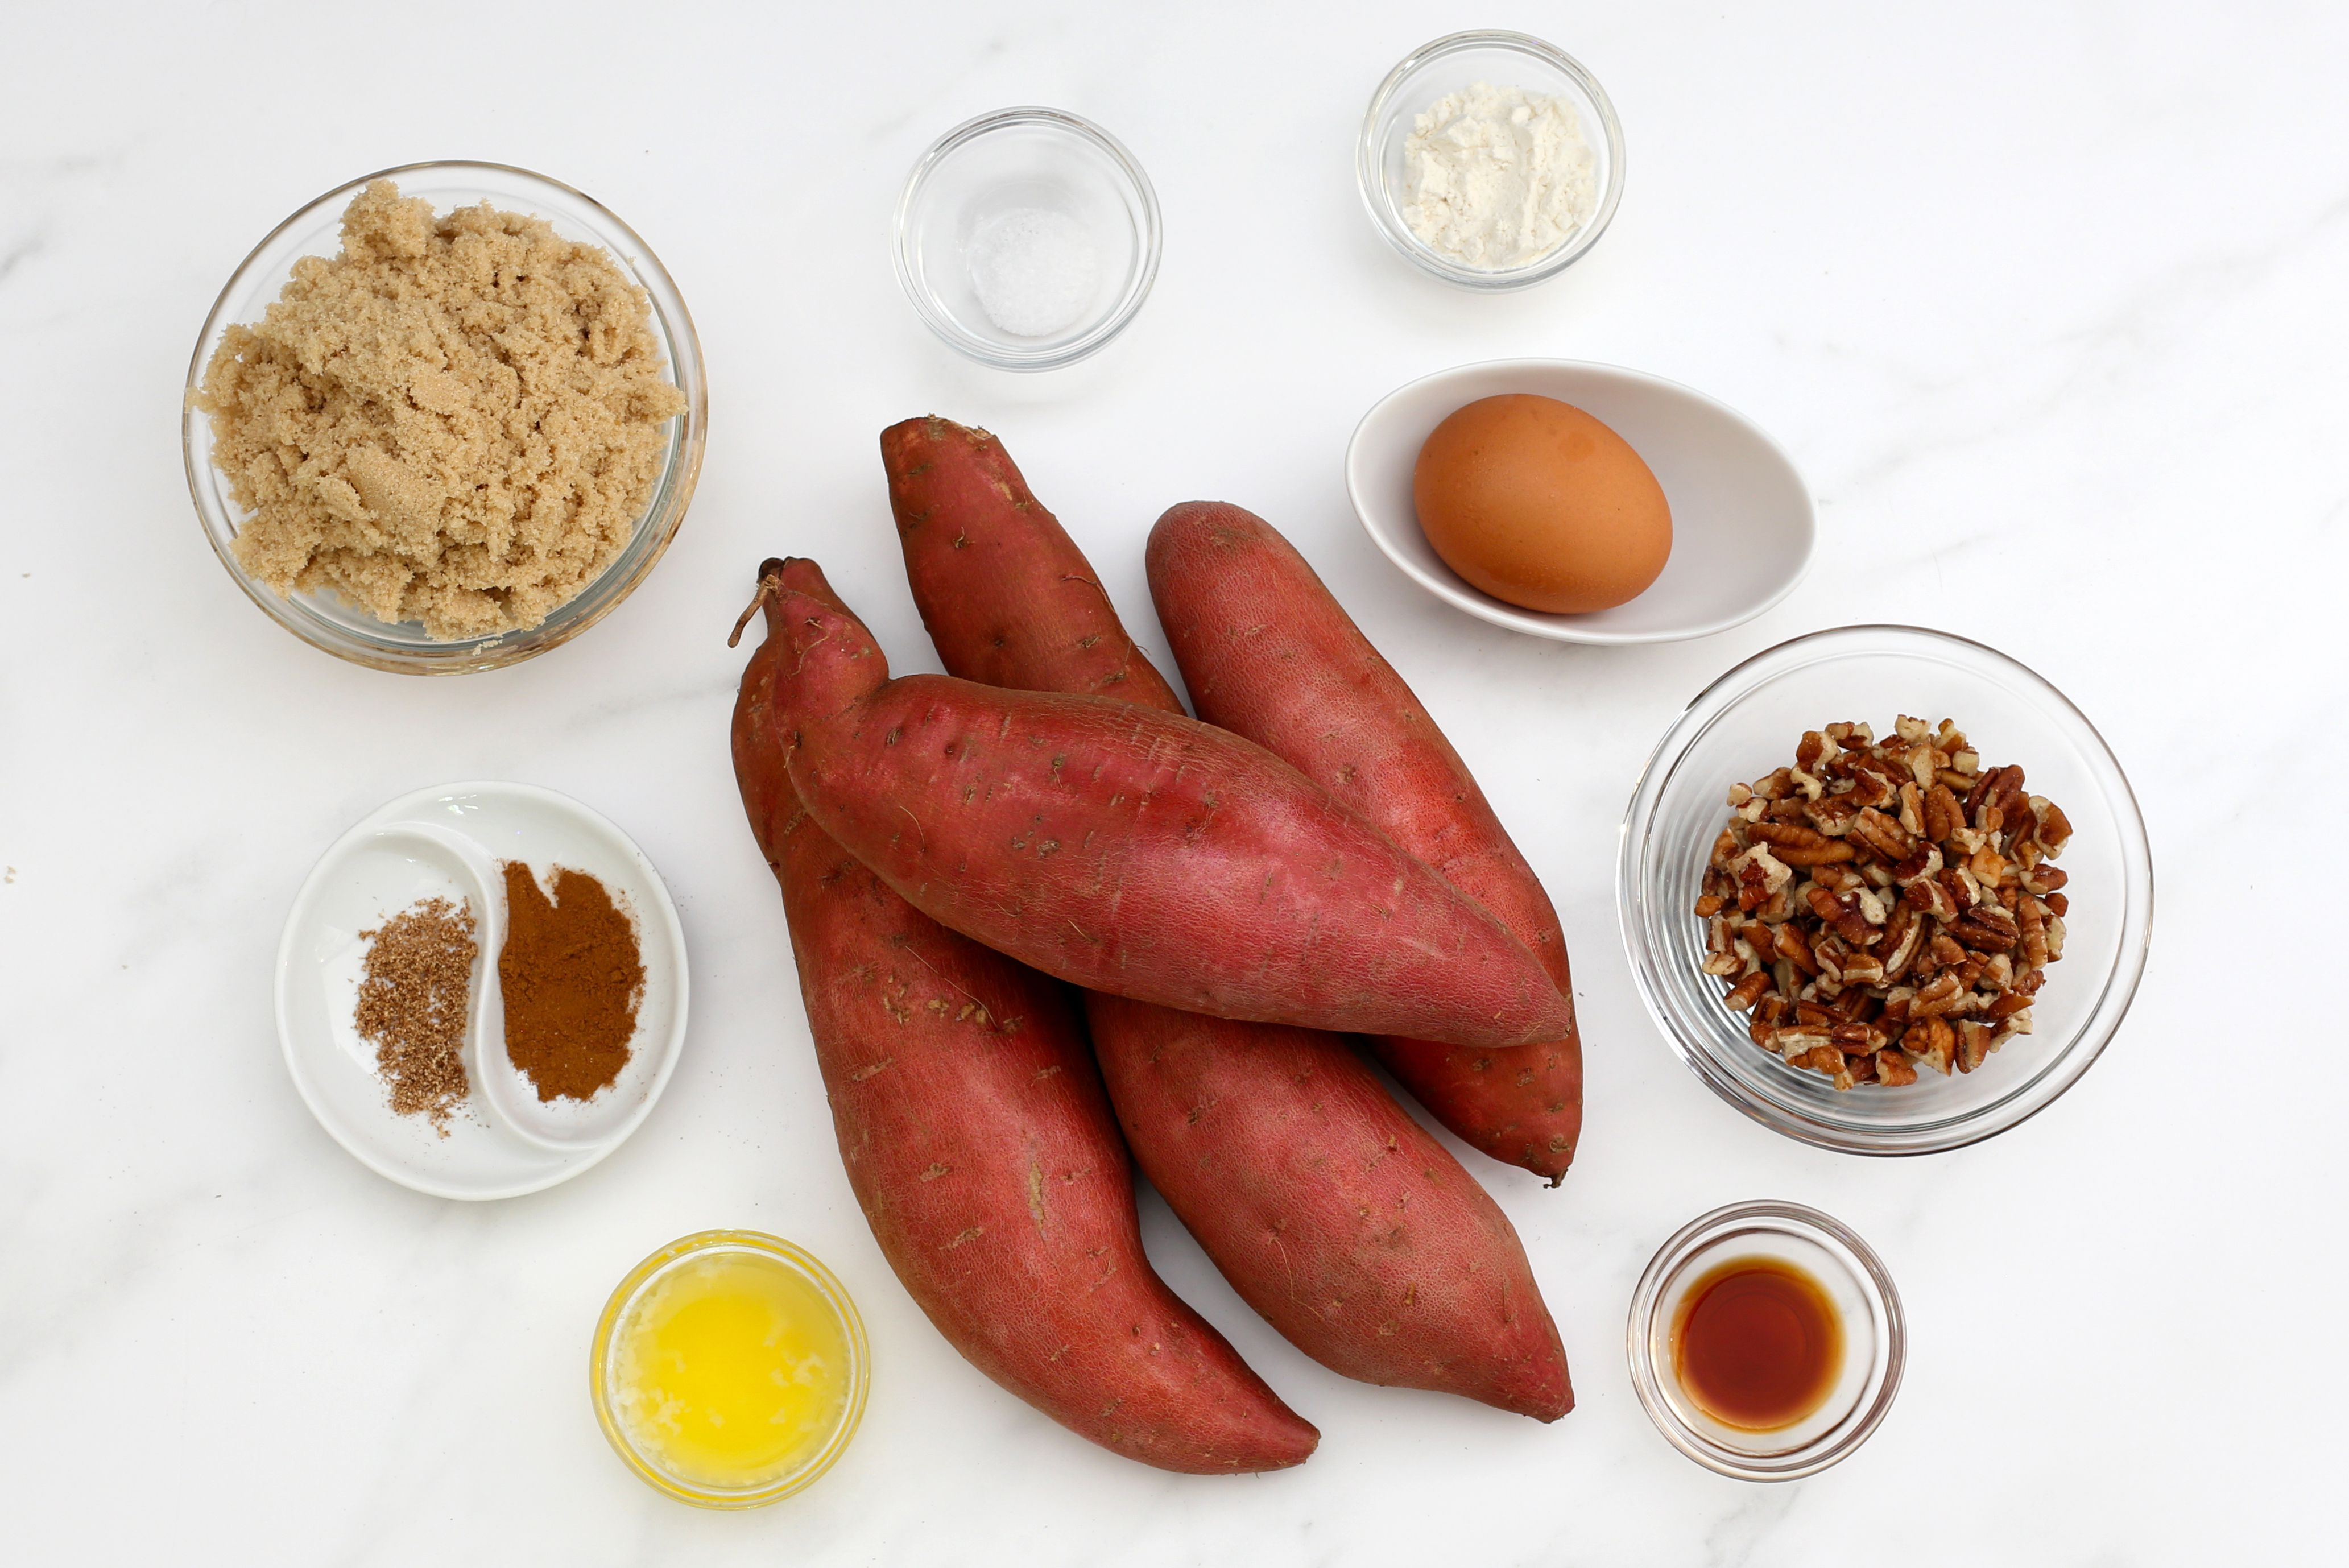 Ingredients for the Instant Pot sweet potato casserole.